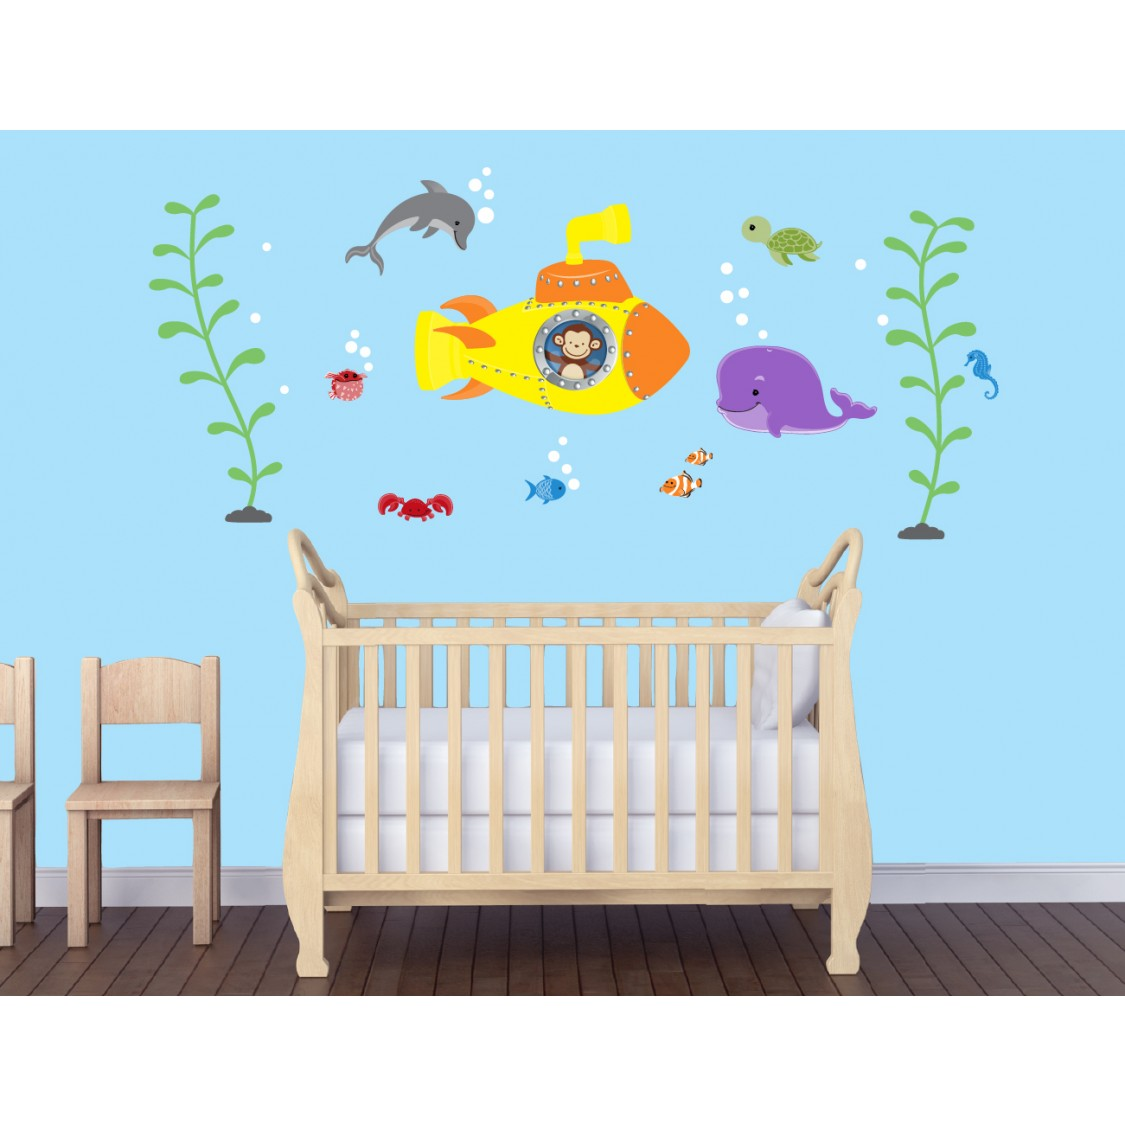 Childrens Bedroom Wall Stickers With Ocean Wall Mural For Baby Room Part 73